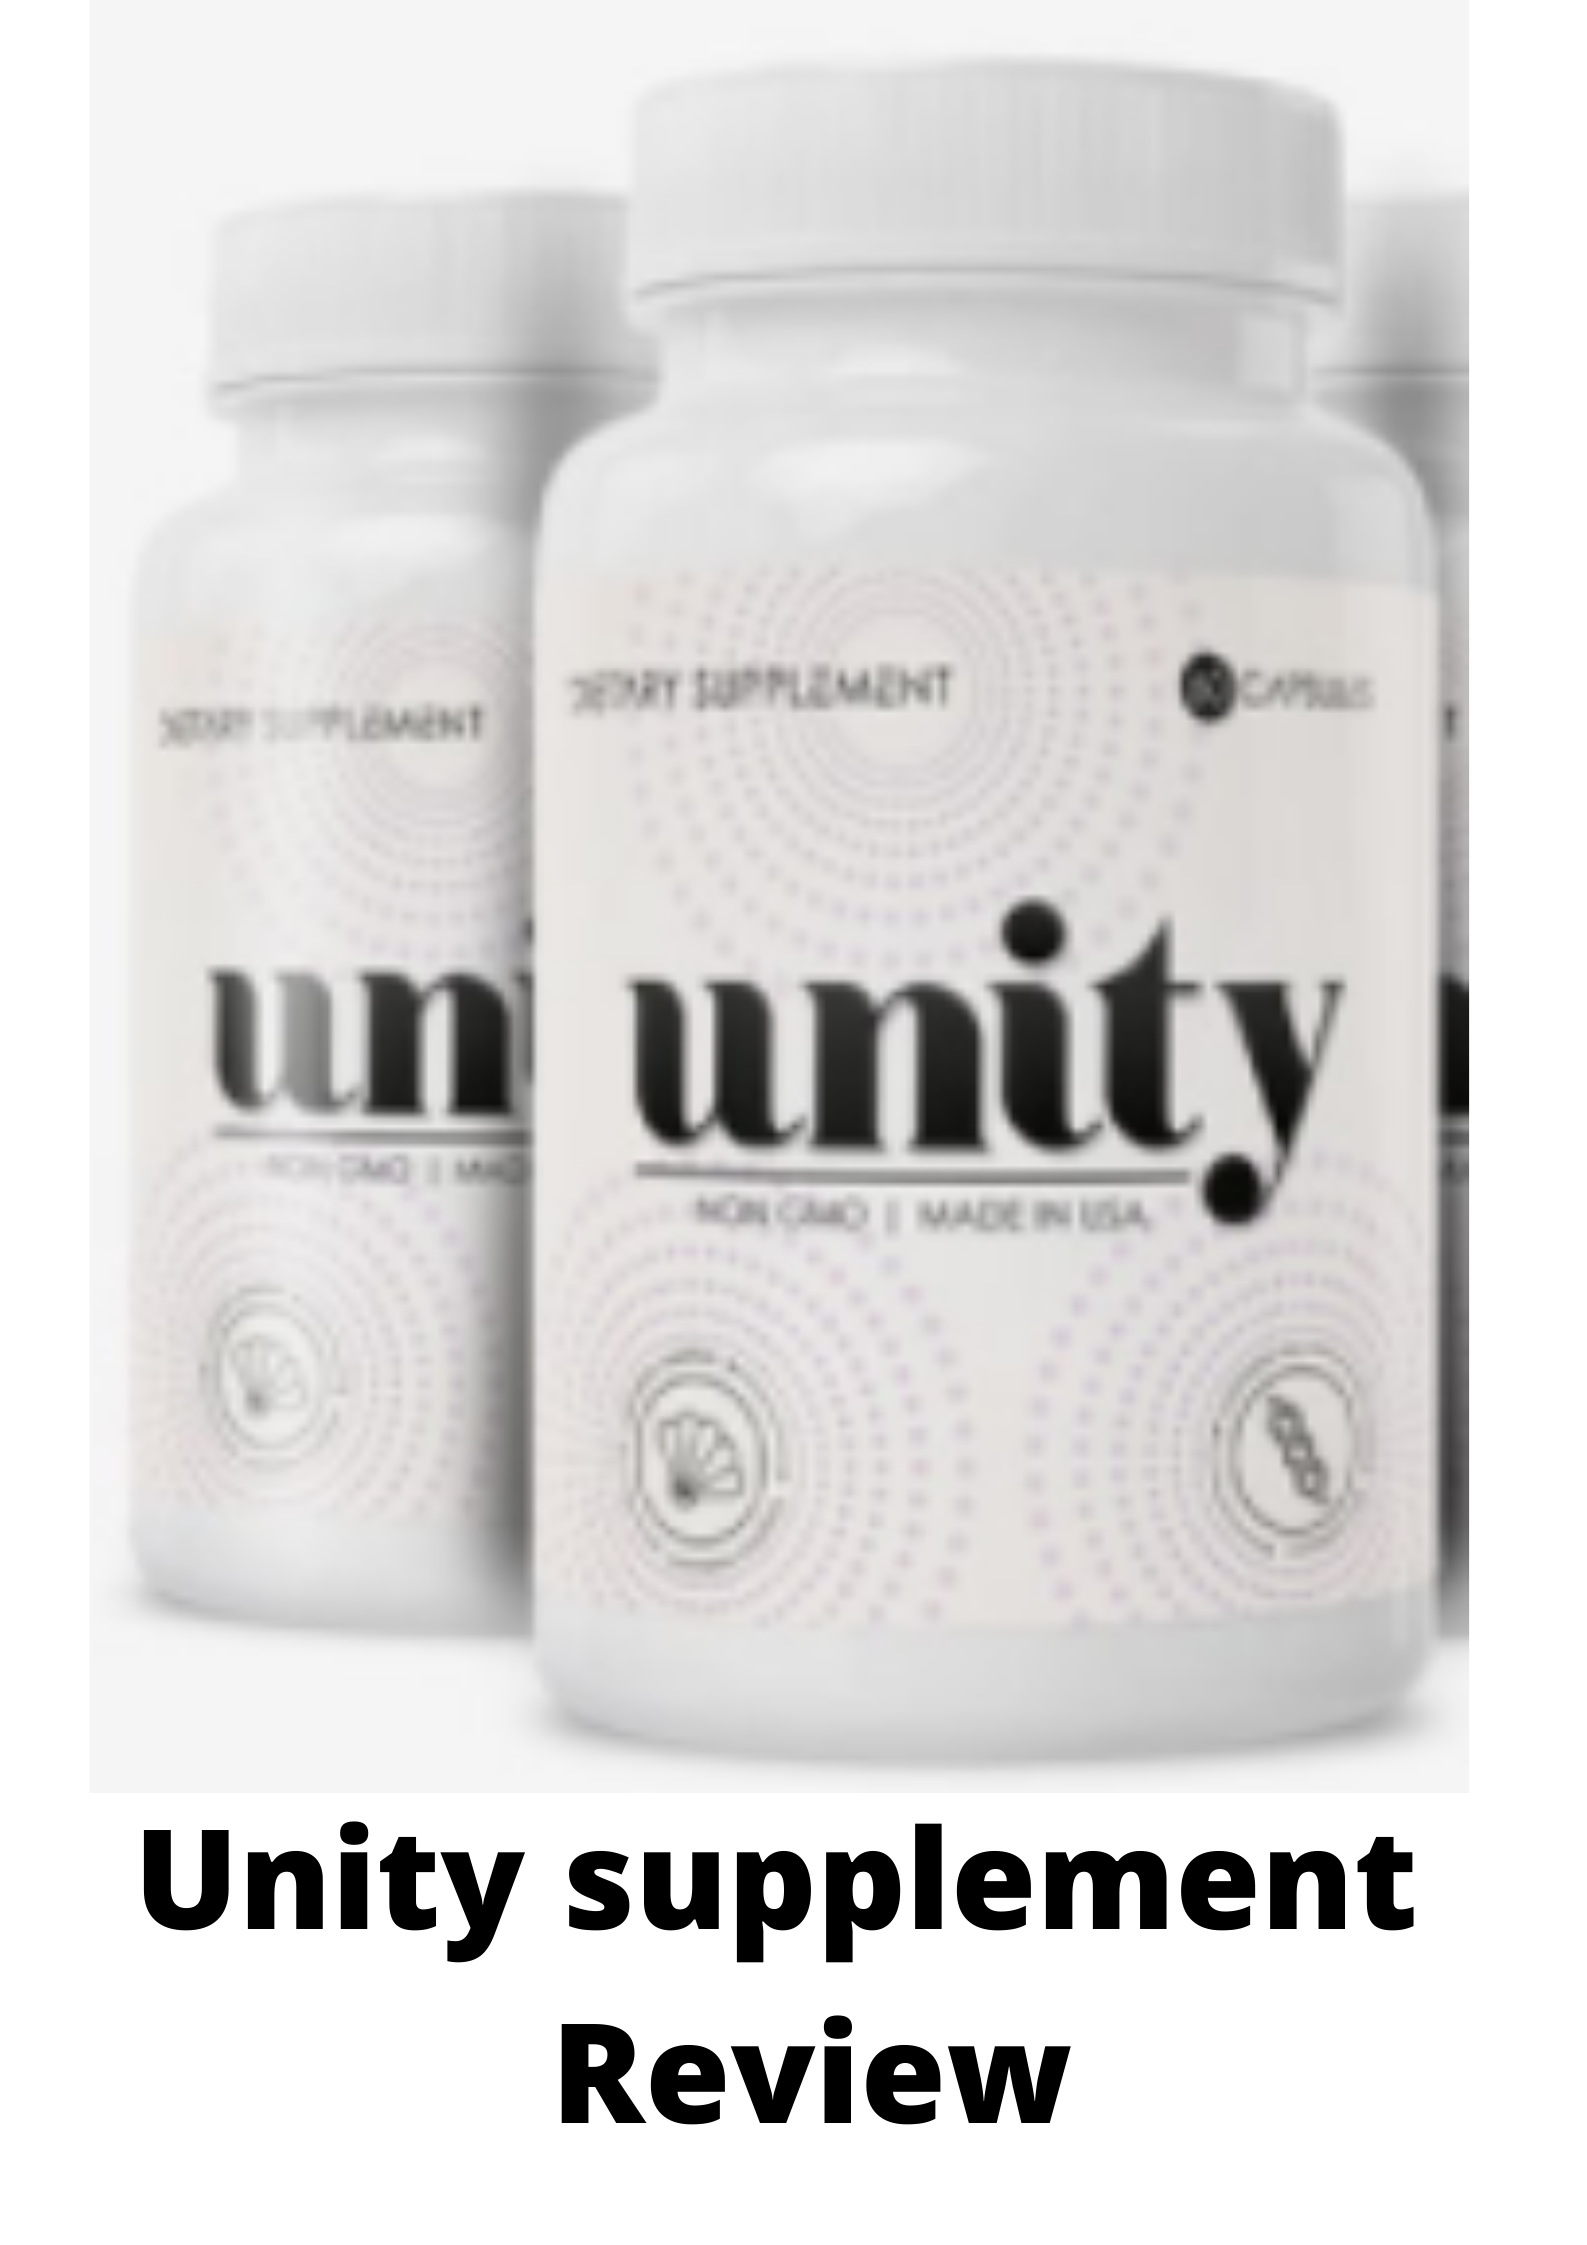 UNITY SUPPLEMENT REVIEW-Should you try it?